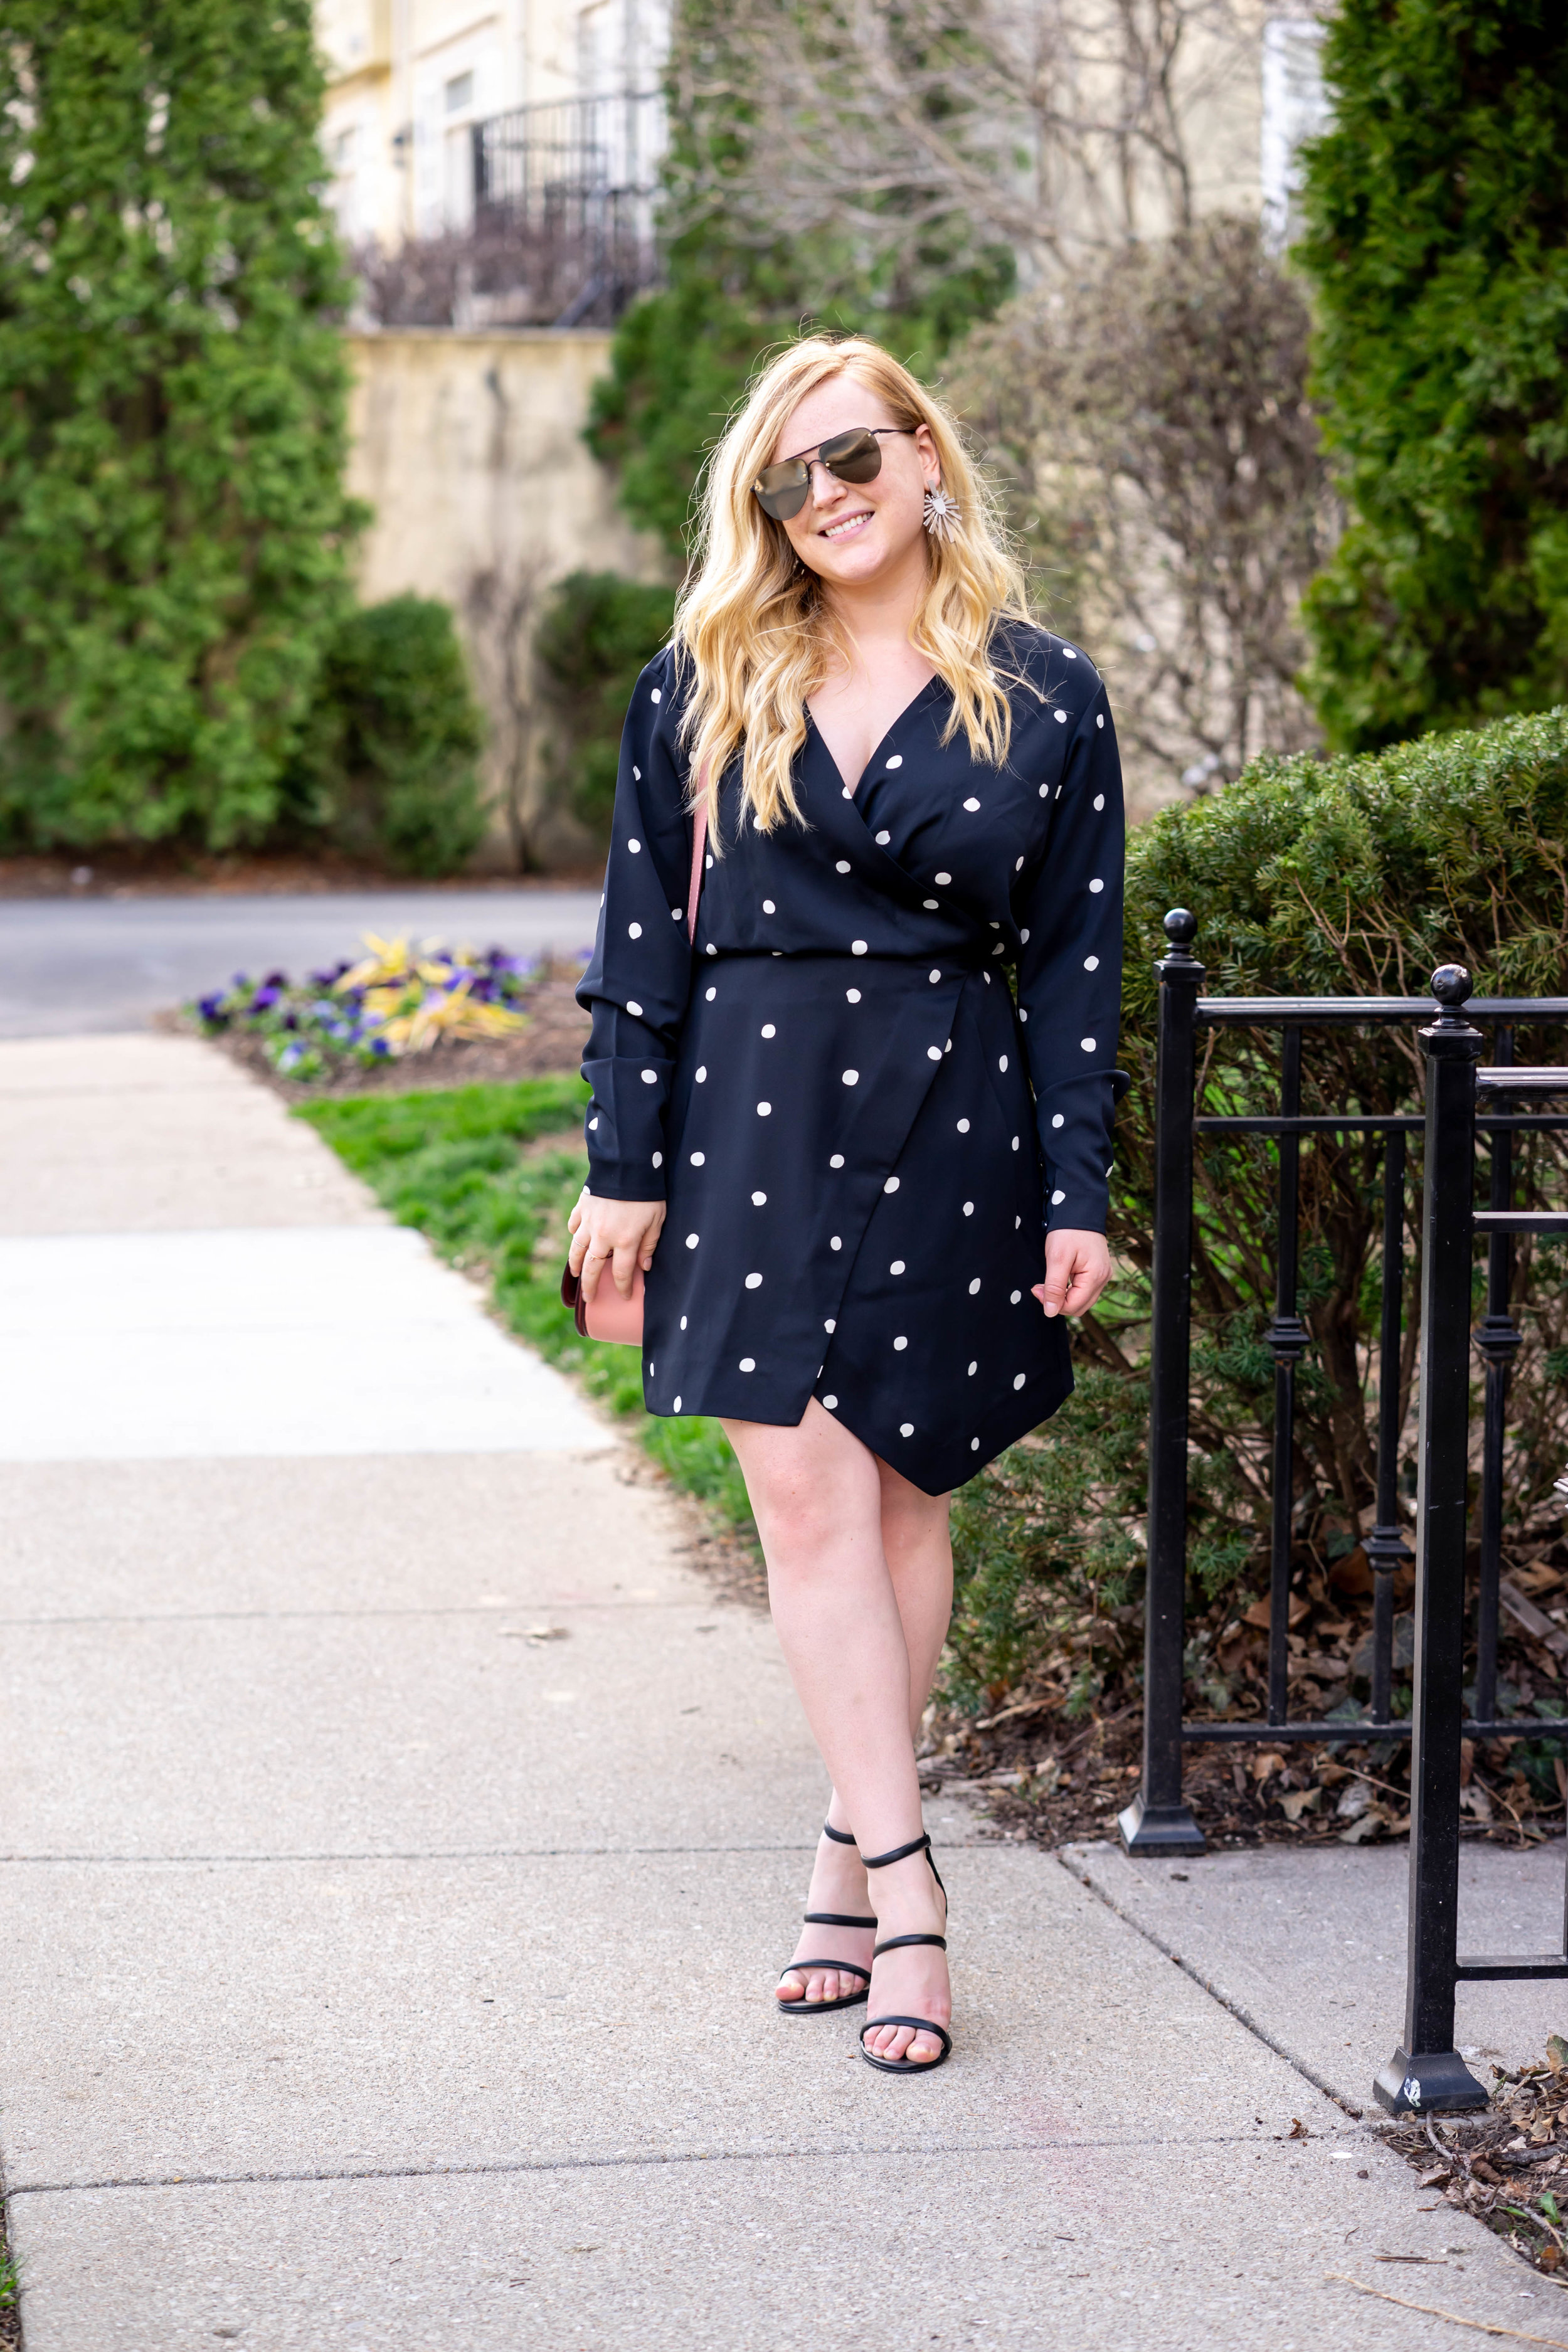 Maggie a la Mode Polka Dot Dress & Other Stories Best Labor Day Sales 2019